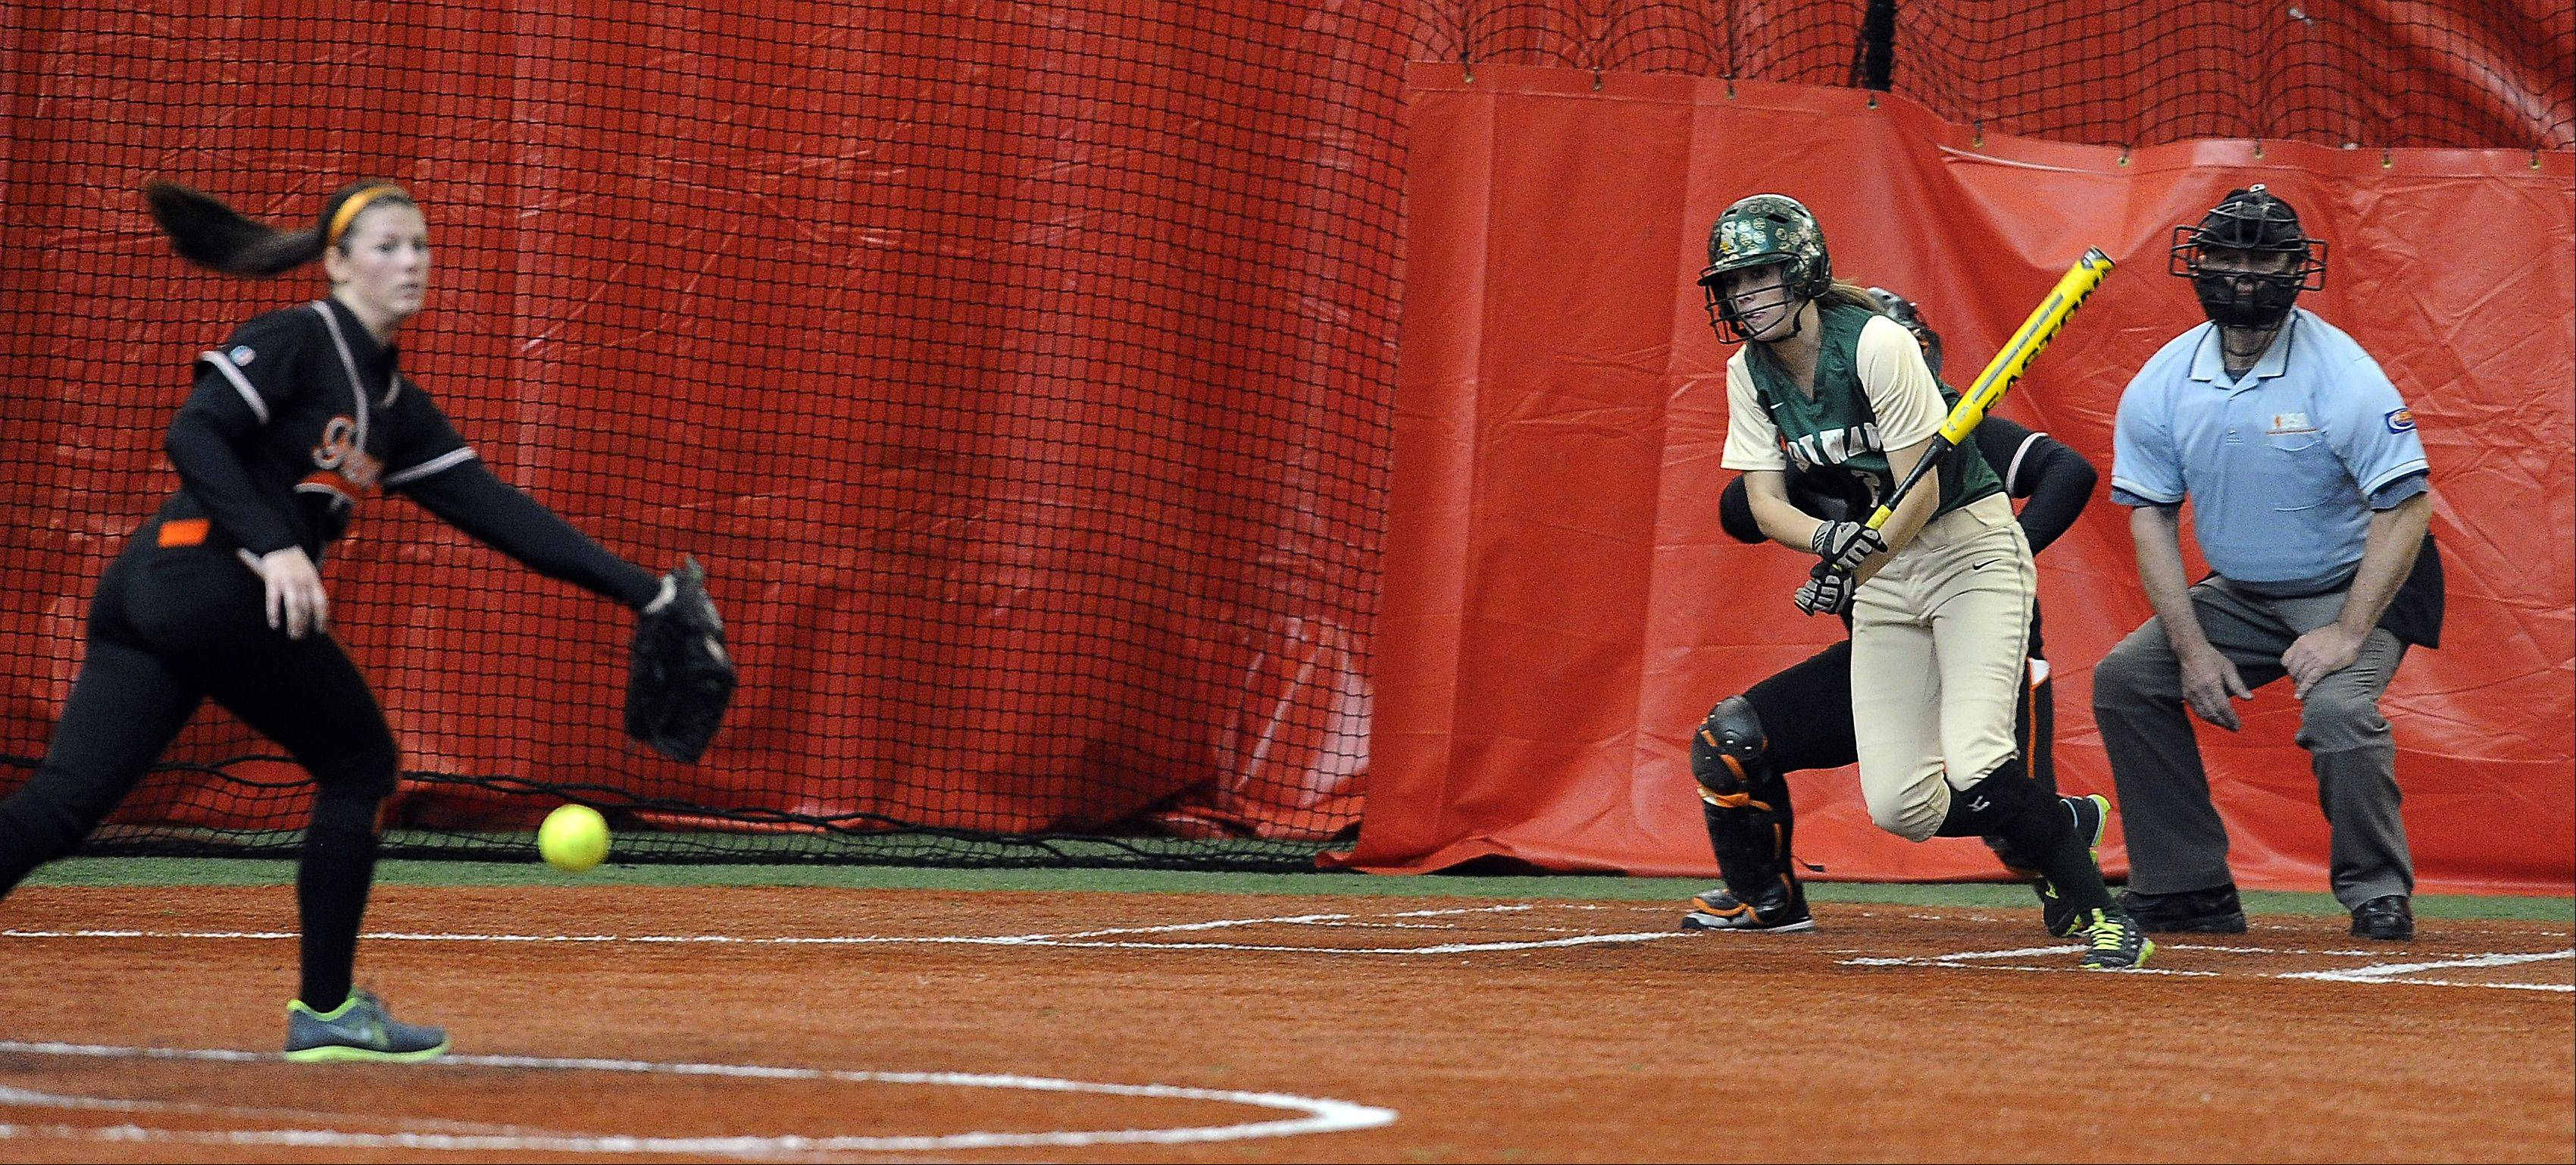 St. Edward's Kali Kossakowski drives one up the middle for an RBI single in Rosemont on Monday.